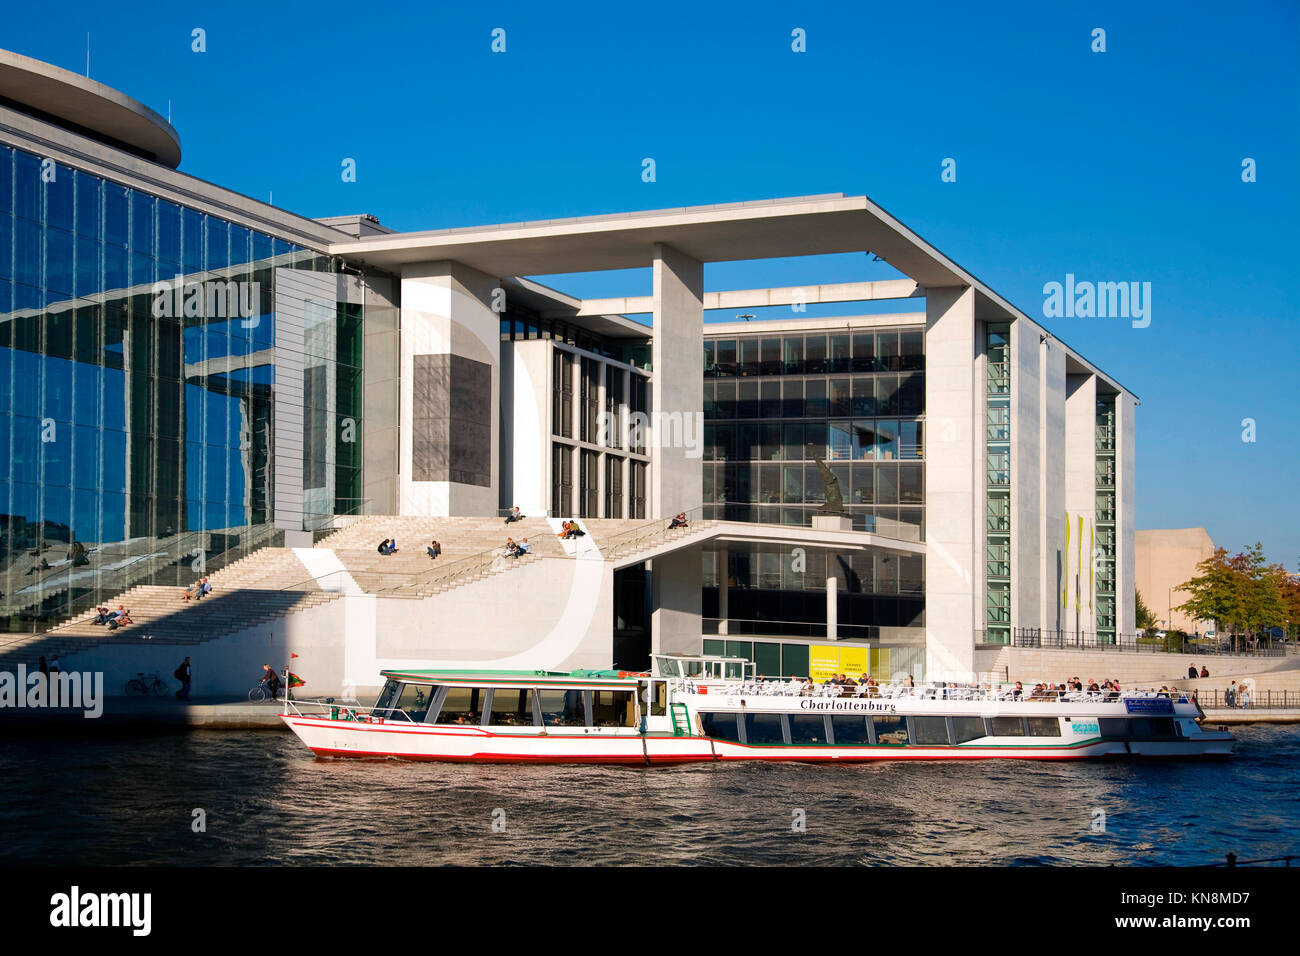 Elisabeth Lueders Haus at river Spree, Tour boat,  Berlin, Germany, - Stock Image